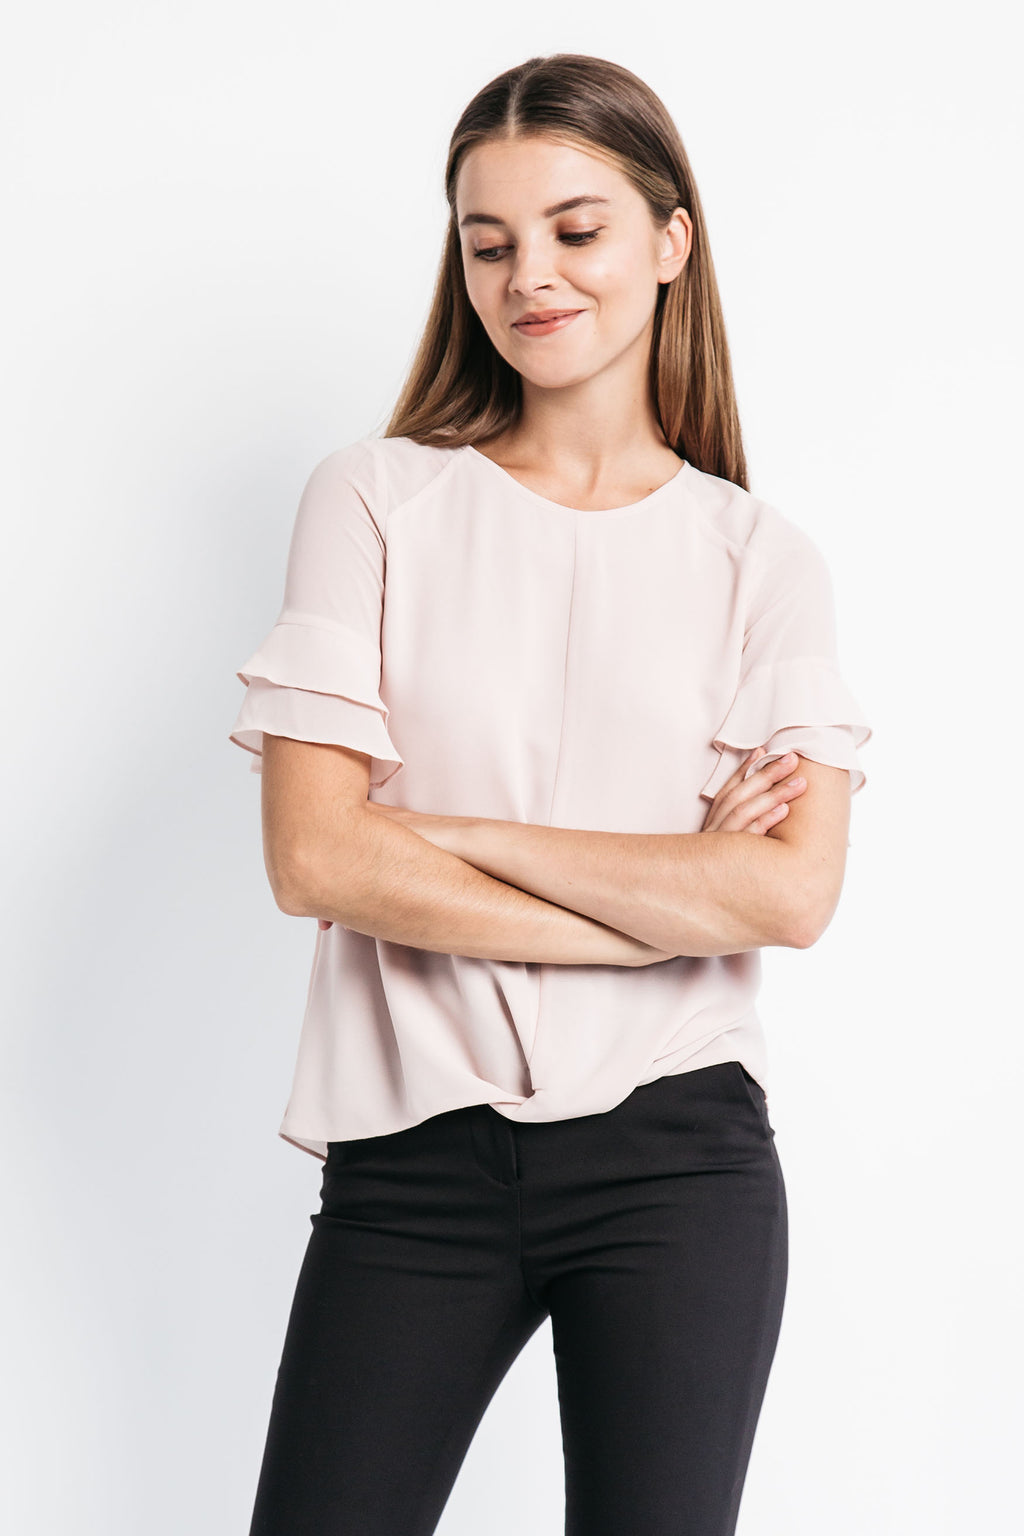 womens business shirts